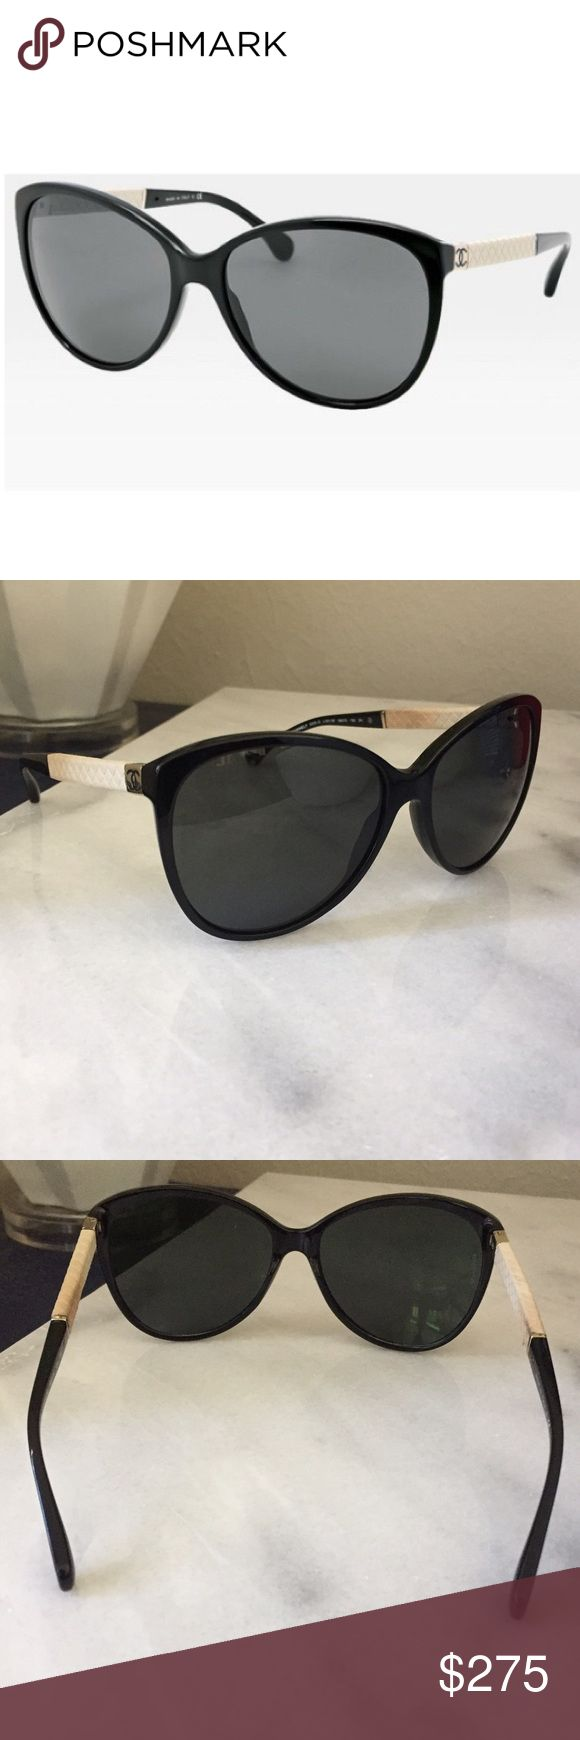 Moving sale‼️RARE: Chanel Sunglasses 5225Q Chanel Sunglasses 5225Q Black and White. These are used and have makeup stains on the sides. Priced as such. 100% authentic and no scratches. Pls ask questions :) comes with original glasses case, cloth, and box. CHANEL Accessories Sunglasses